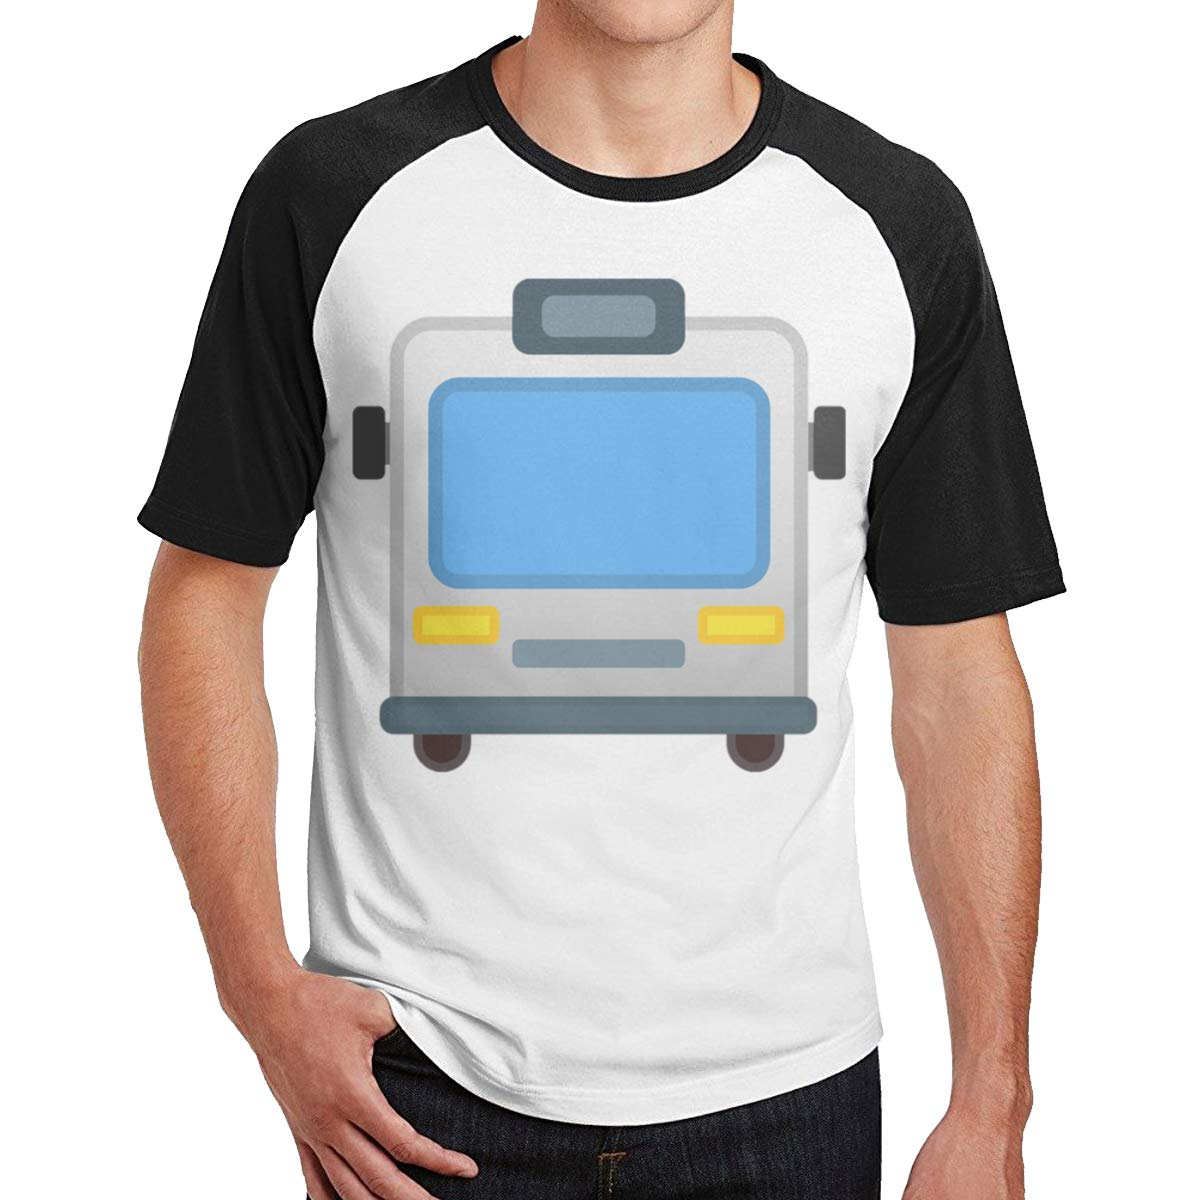 ALWAYSUV Mens Design with Travel Icon Leisure Travel Icon Short Sleeve Tee Shirt